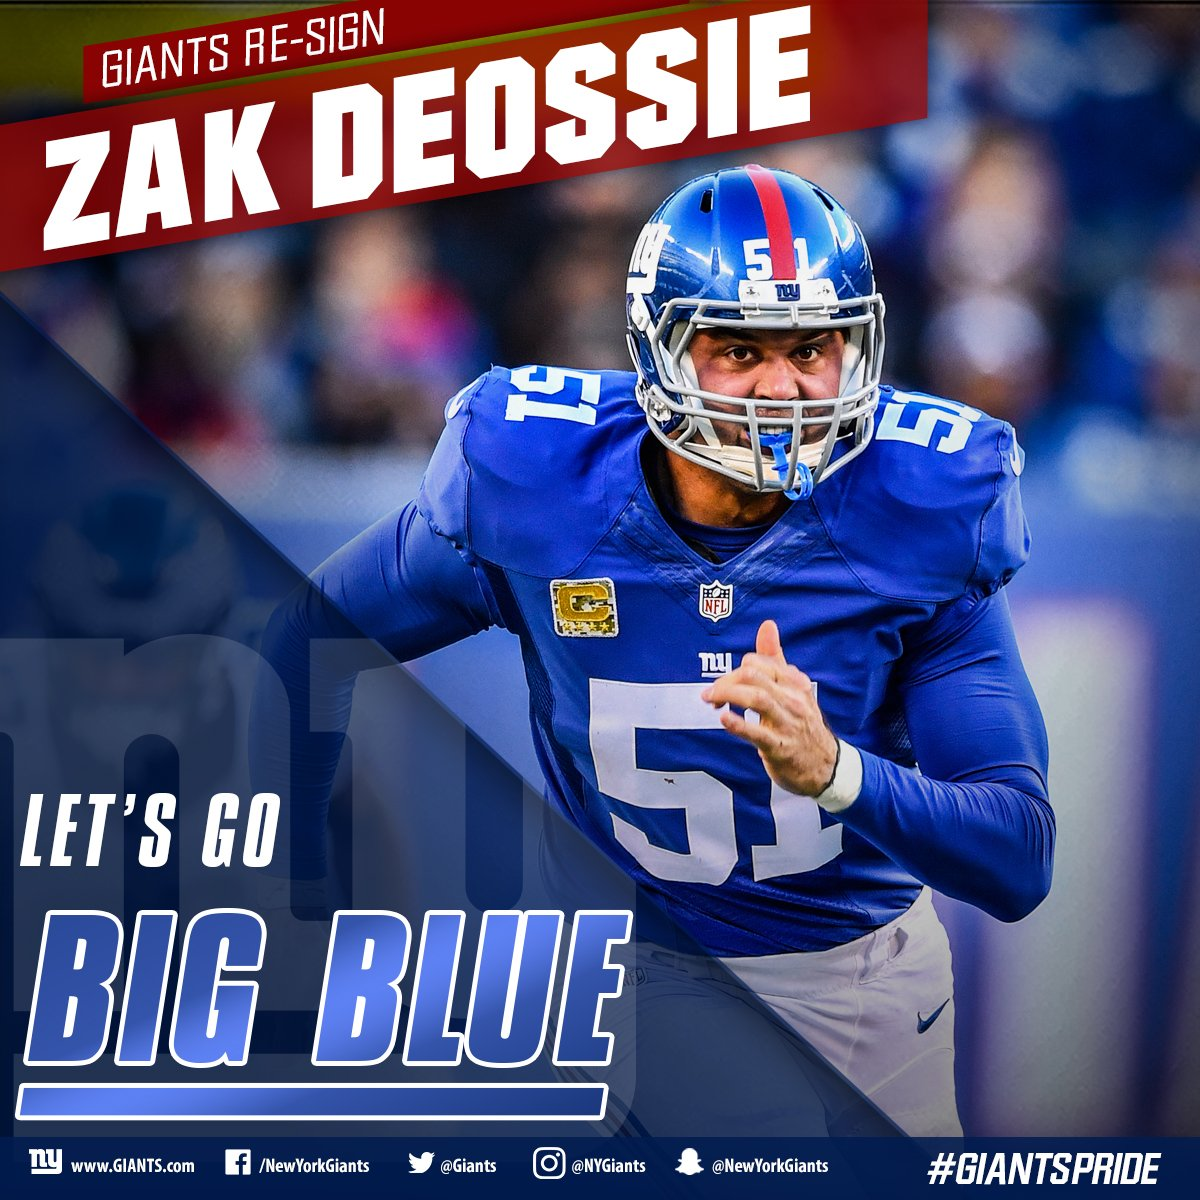 The #Giants have re-signed long snapper Zak DeOssie! #GiantsPride  DETAILS:  http:// bit.ly/2l8j3H1  &nbsp;  <br>http://pic.twitter.com/i0U5sexHDm